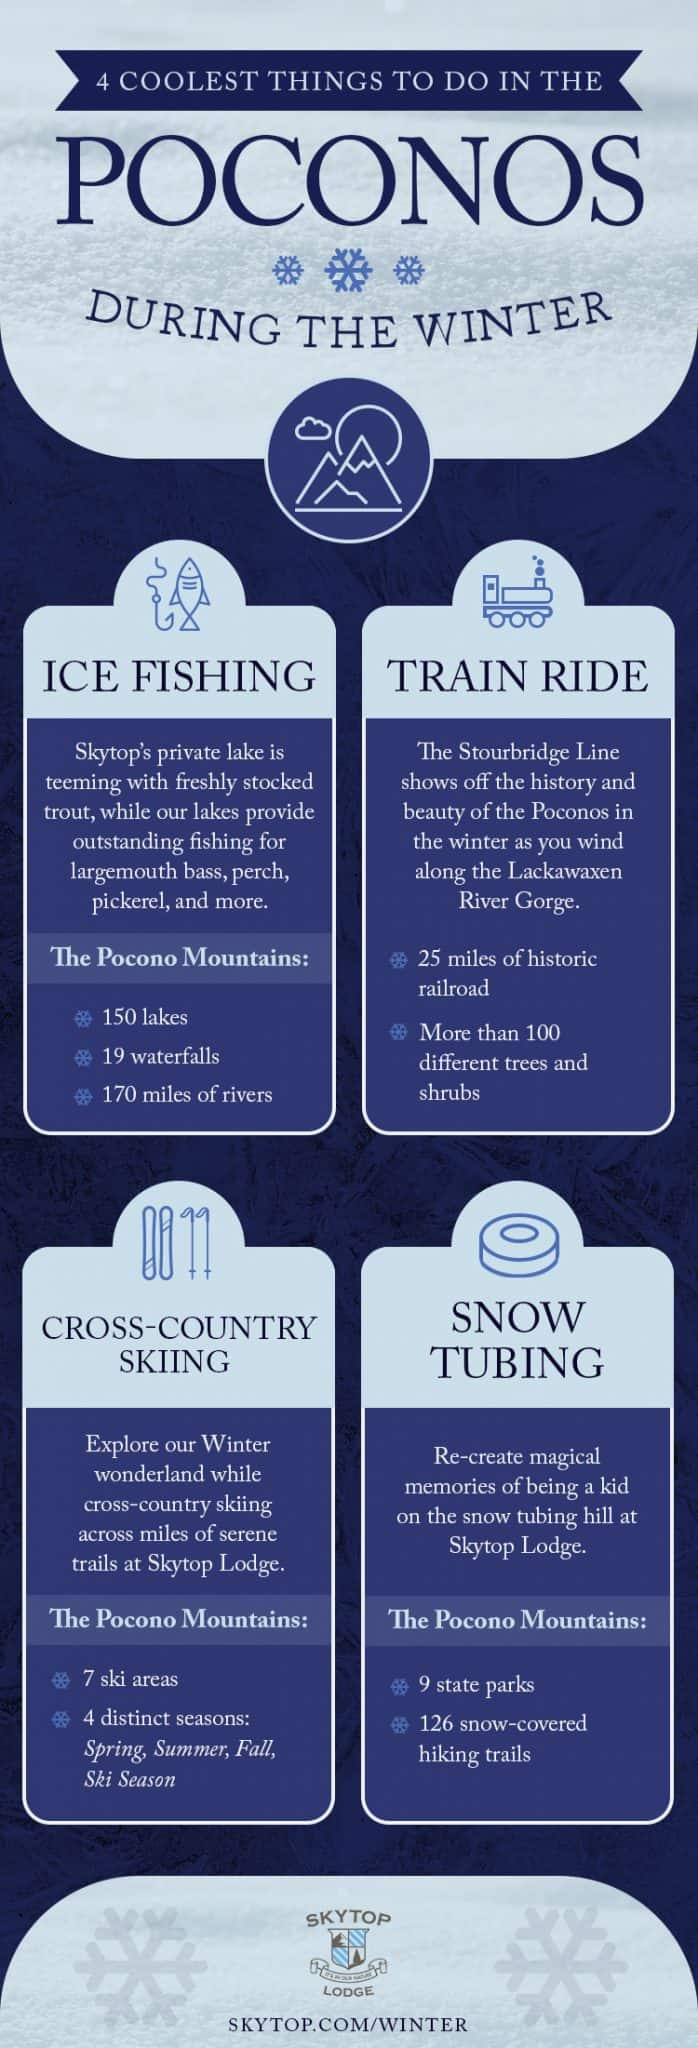 4 Coolest Things to Do in the Poconos During the Winter [Infographic]